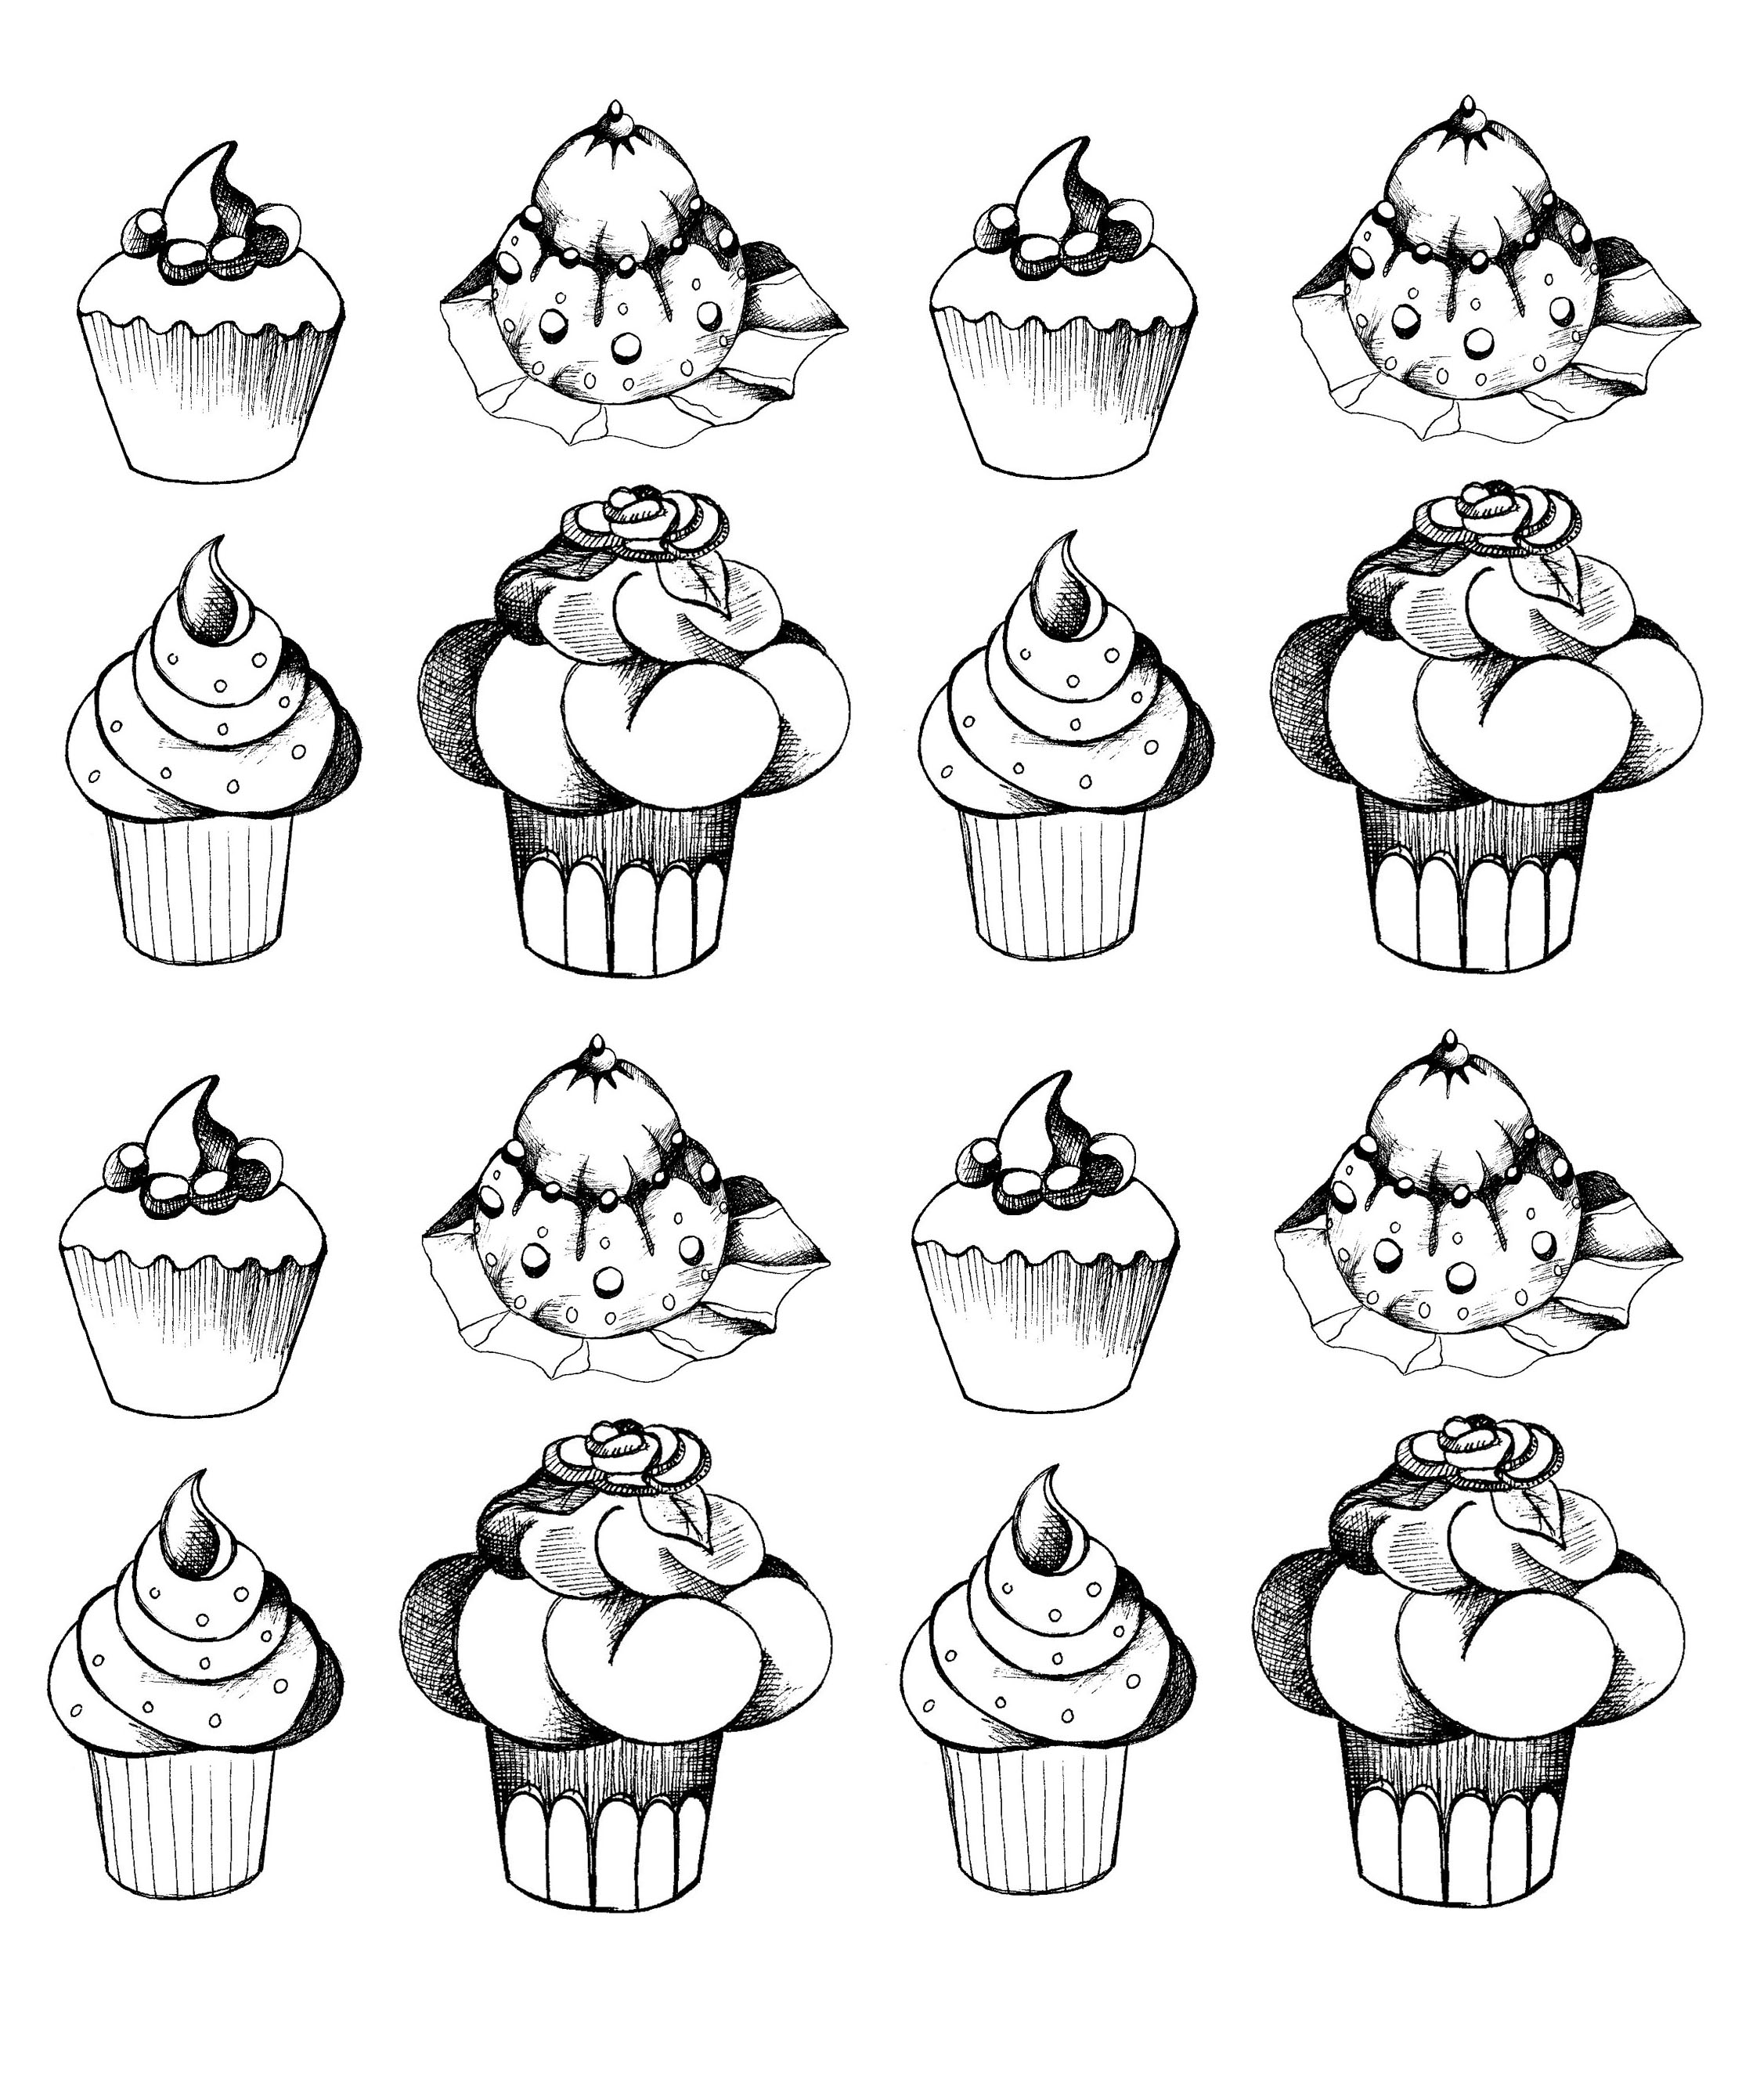 Cupcakes Oldstyle Cupcakes And Cakes Coloring Pages For Adults